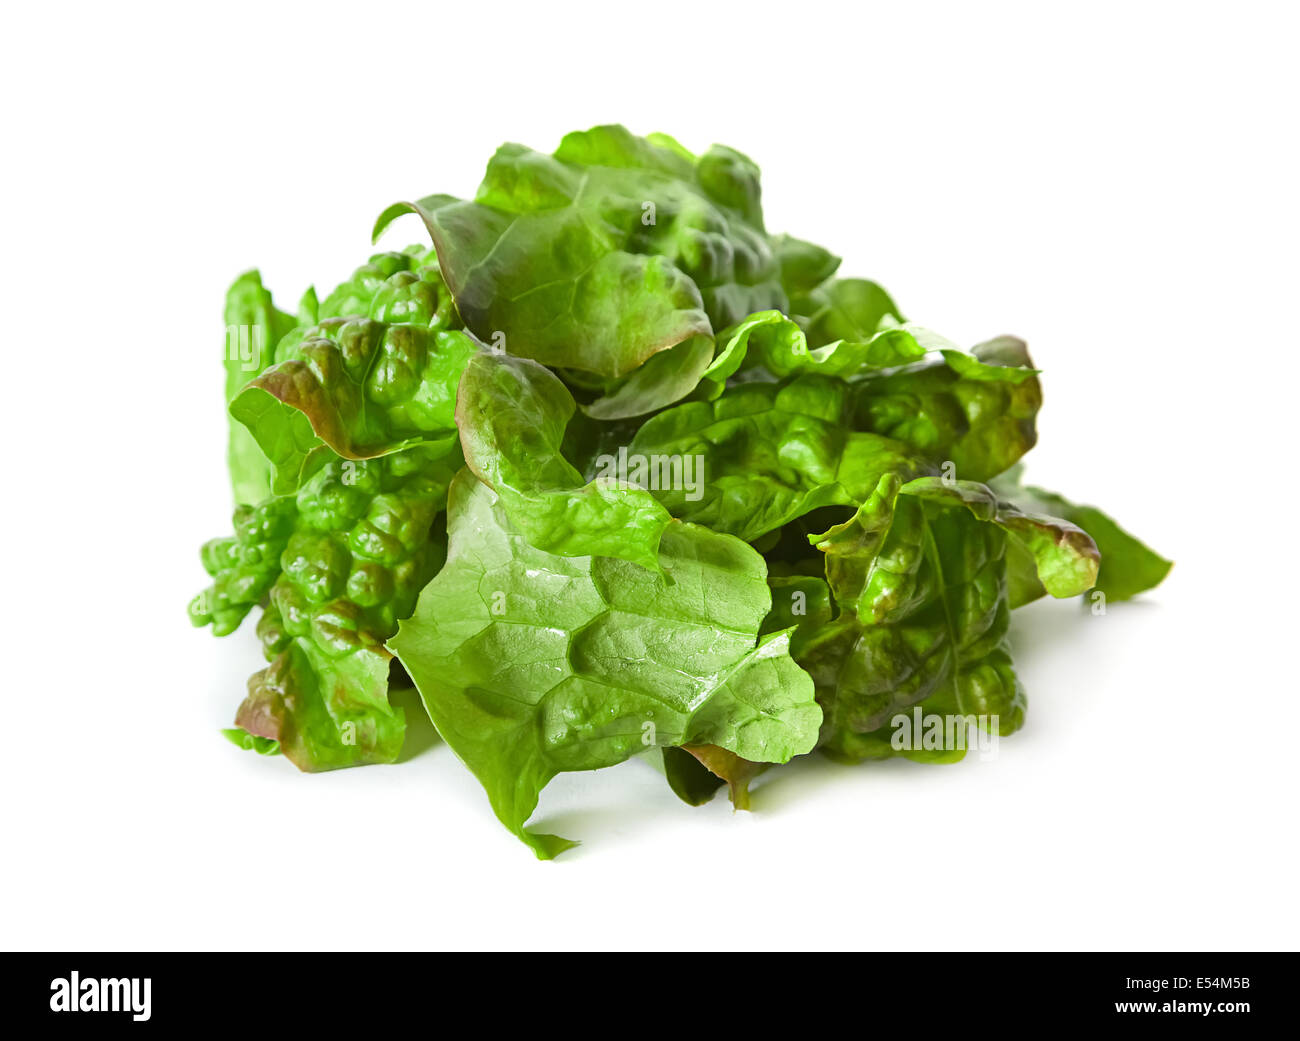 Ragged curly lettuce salad closeup isolated on white - Stock Image